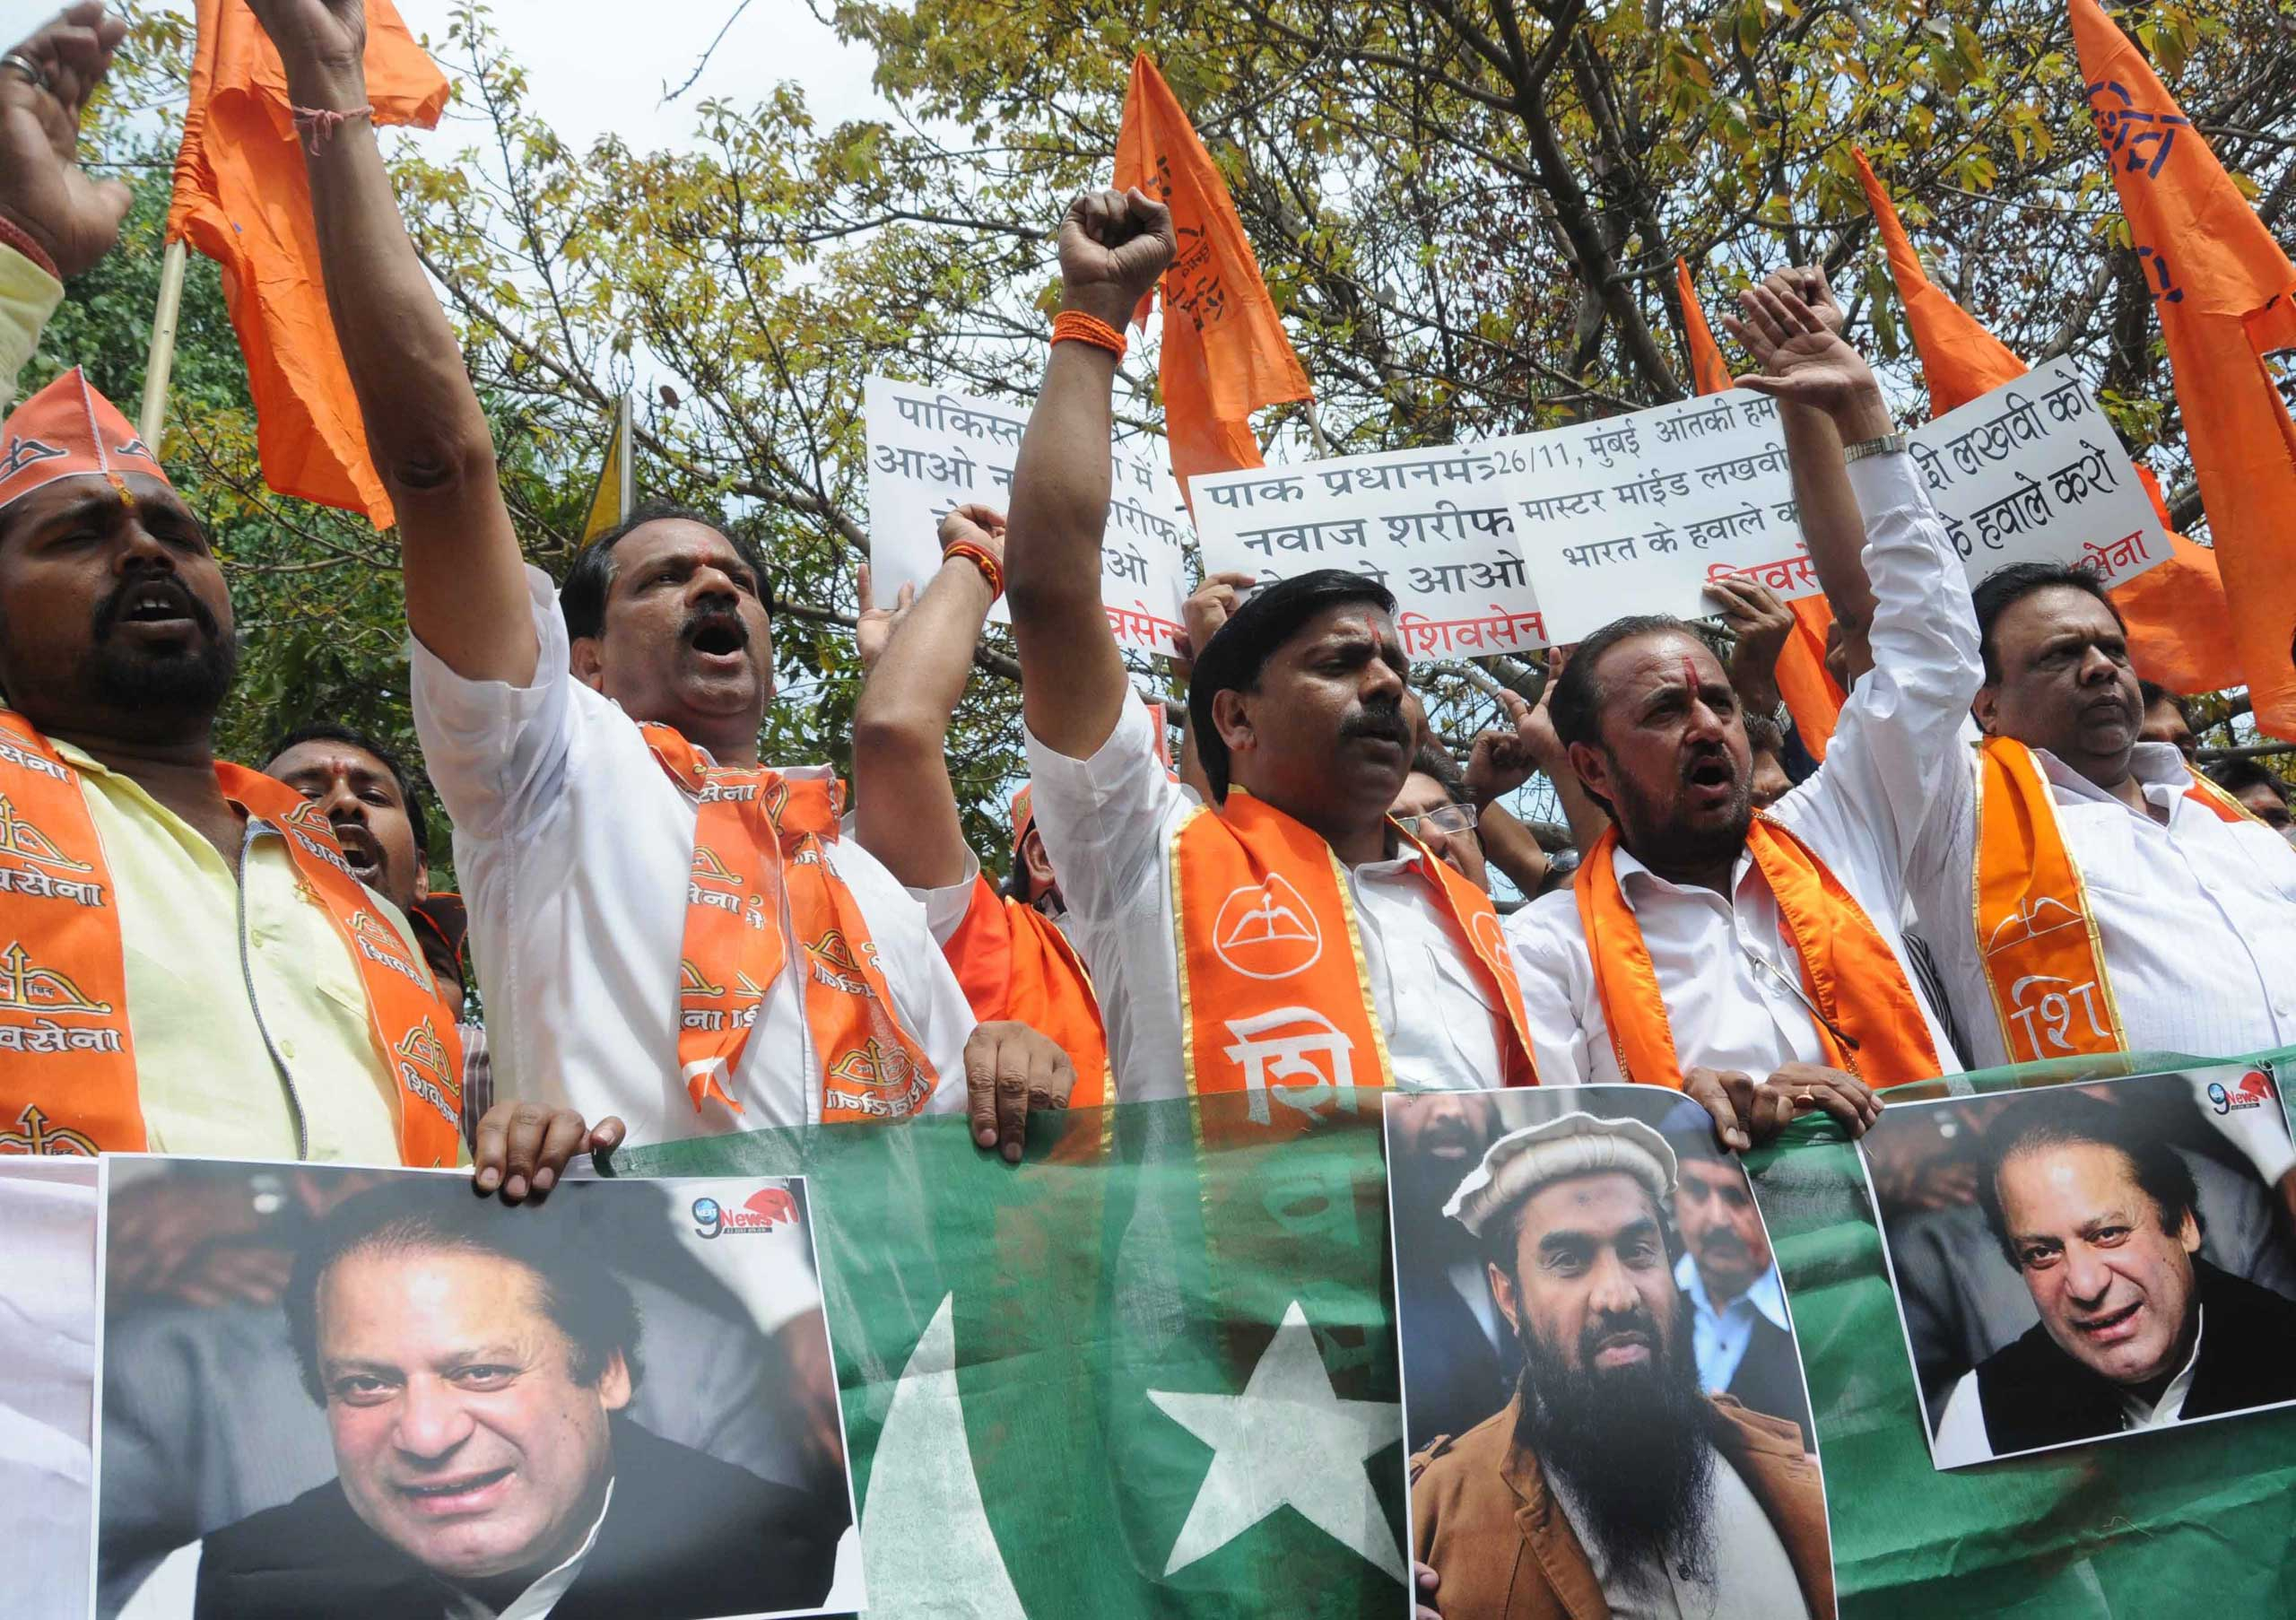 Activists of India's right-wing Shiv Sena party shout slogans before they burnt posters of Pakistani Prime Minister Nawaz Sharif and Zaki-ur-Rehman Lakhvi (C-bottom), alleged mastermind of the 2008 Mumbai attacks during a protest against Zaki-ur-Rehman's release, in New Delhi, on April 11, 2015.